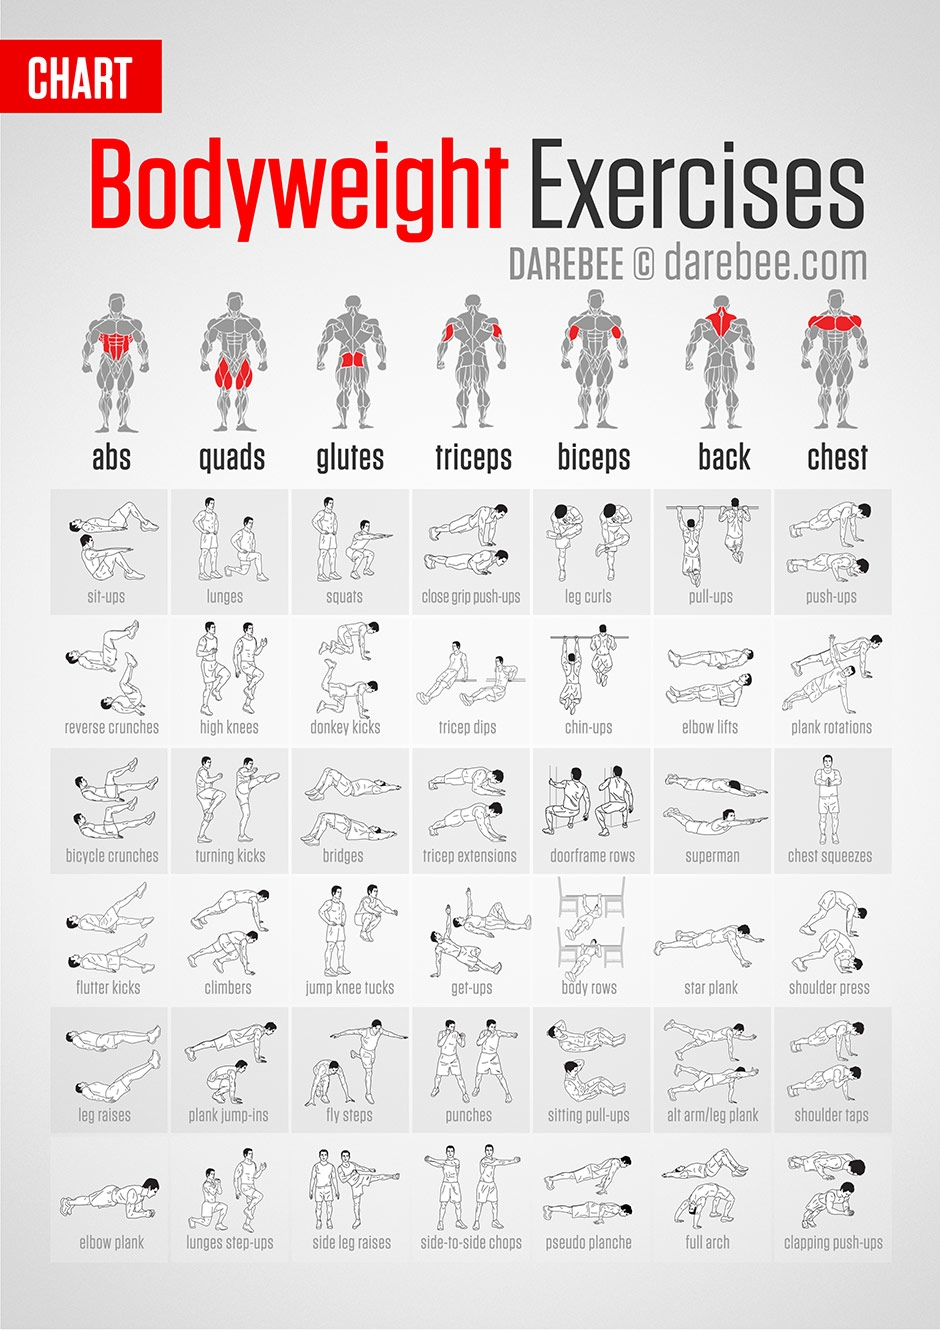 Bodyweight exercises chart weightloss alonzo pinterest teenage is the time where you require nutritious food to stay healthy attain desired weight here is how to lose weight fast at home for teenagers geenschuldenfo Choice Image